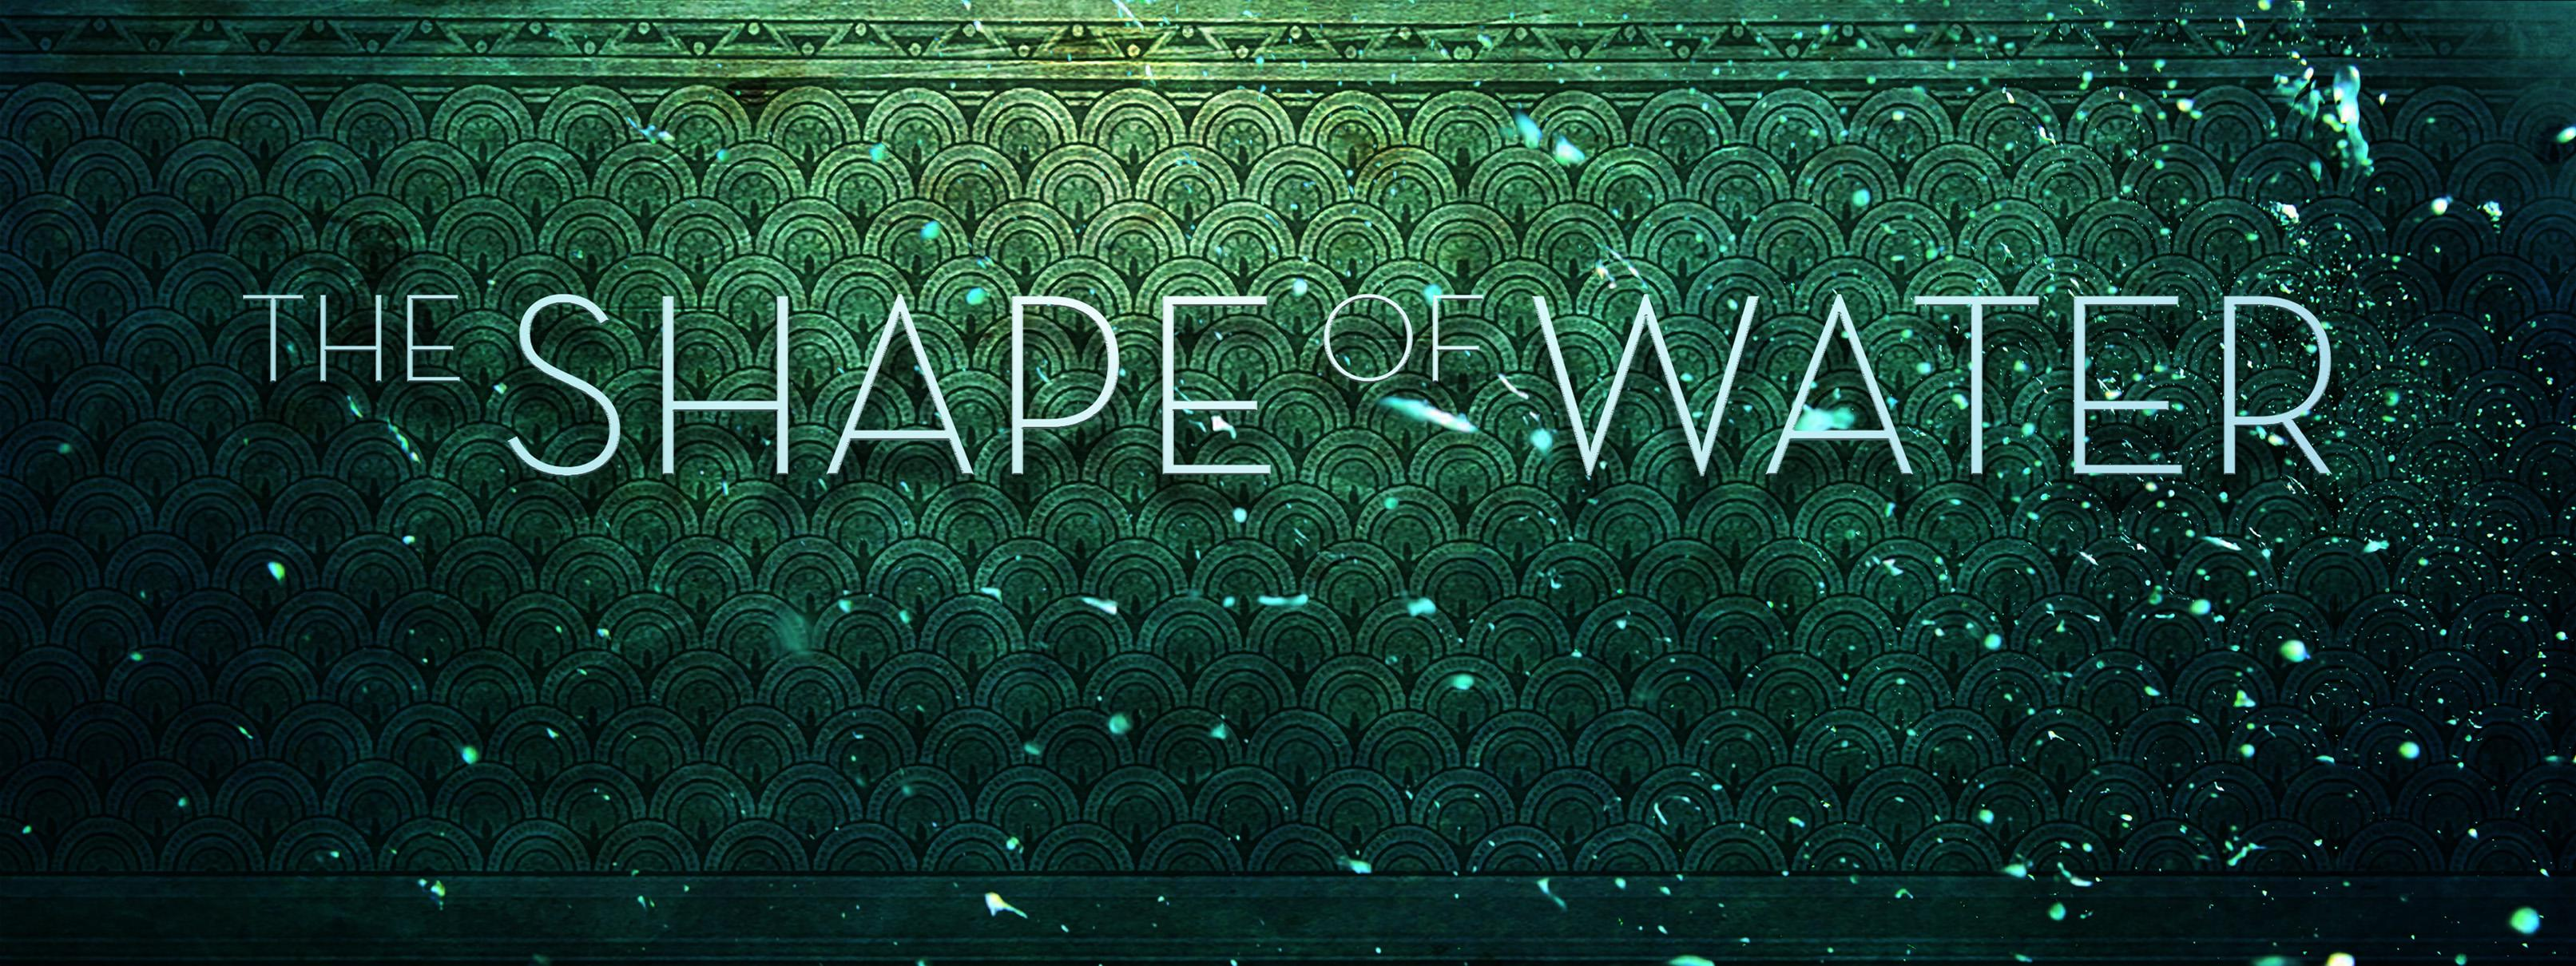 Calendar Quotes From The Shape Of Water : The shape of water il trailer del film di guillermo